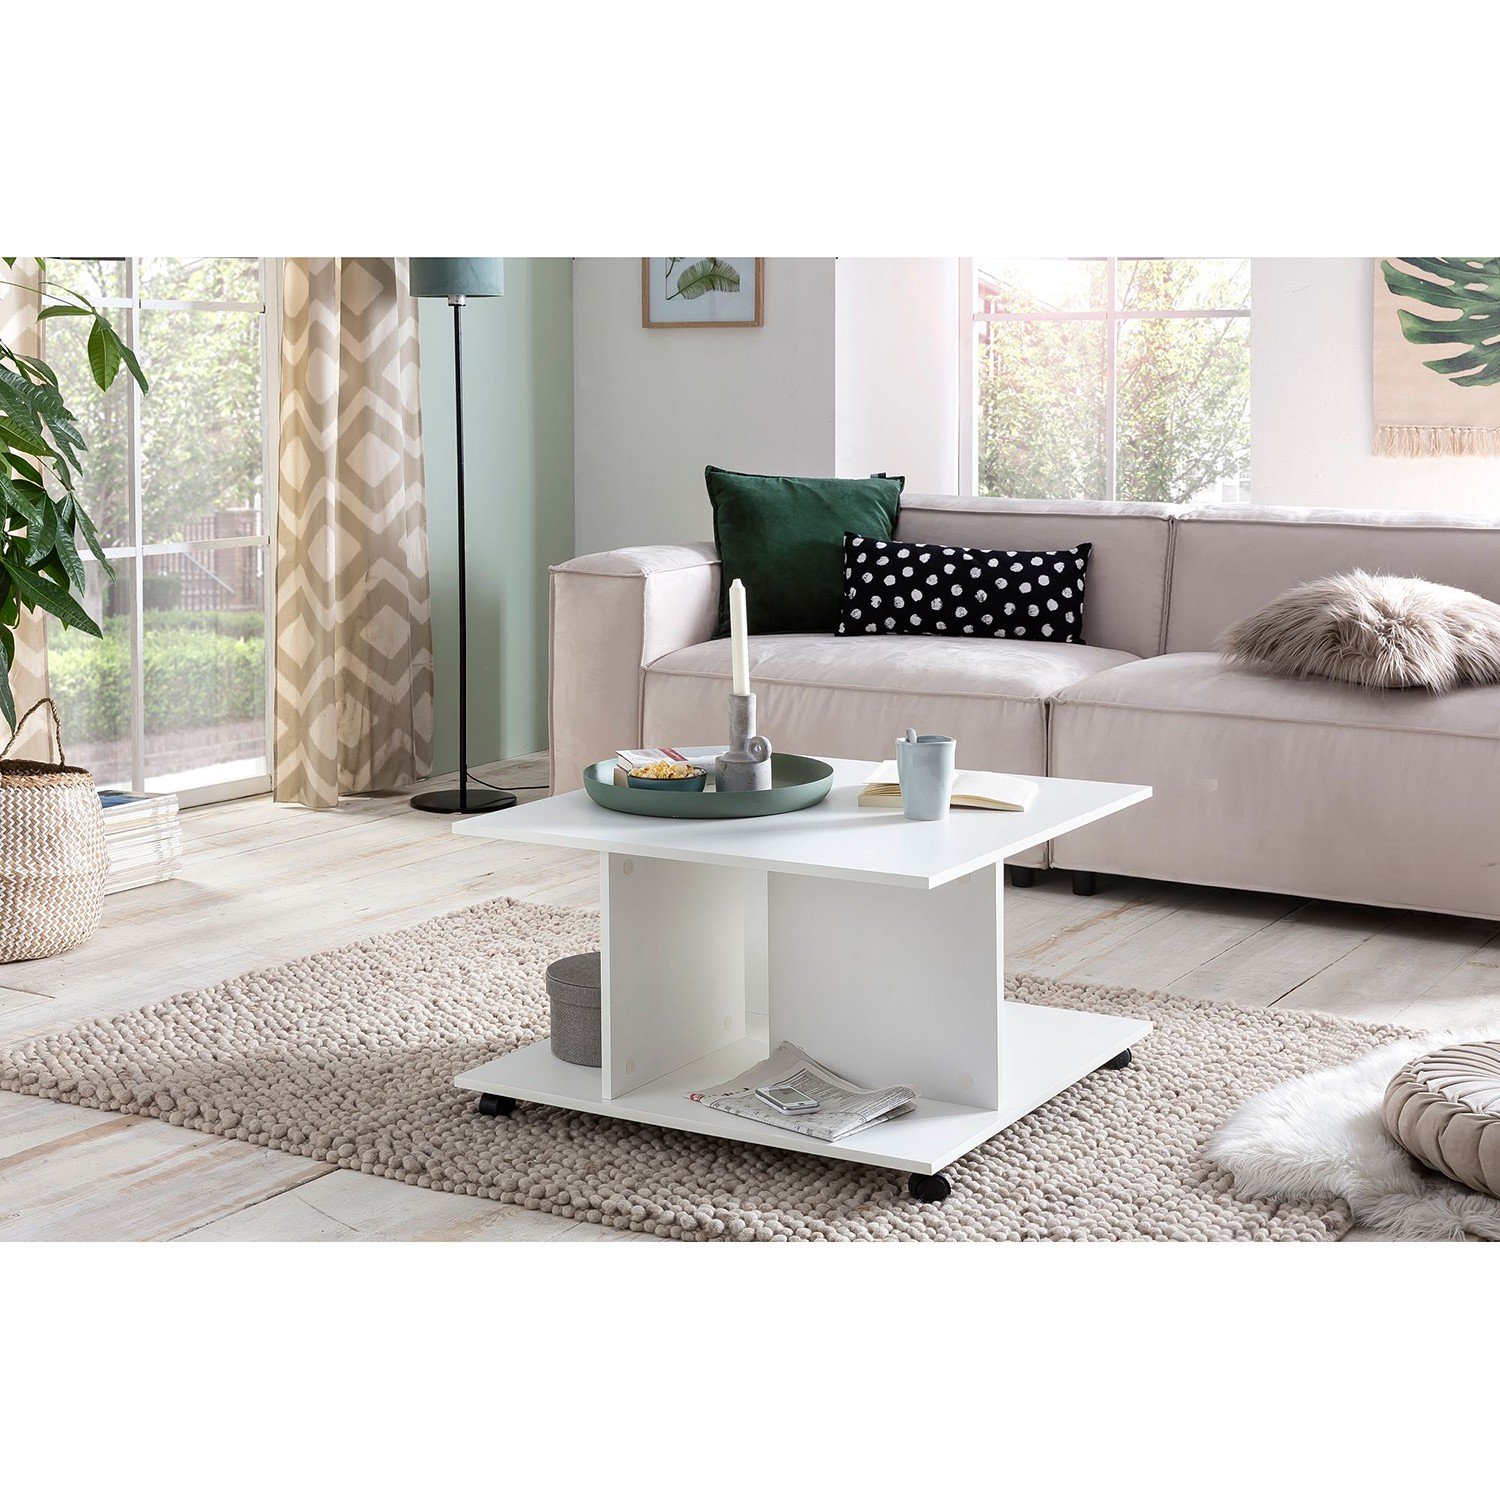 Table basse Beal IV